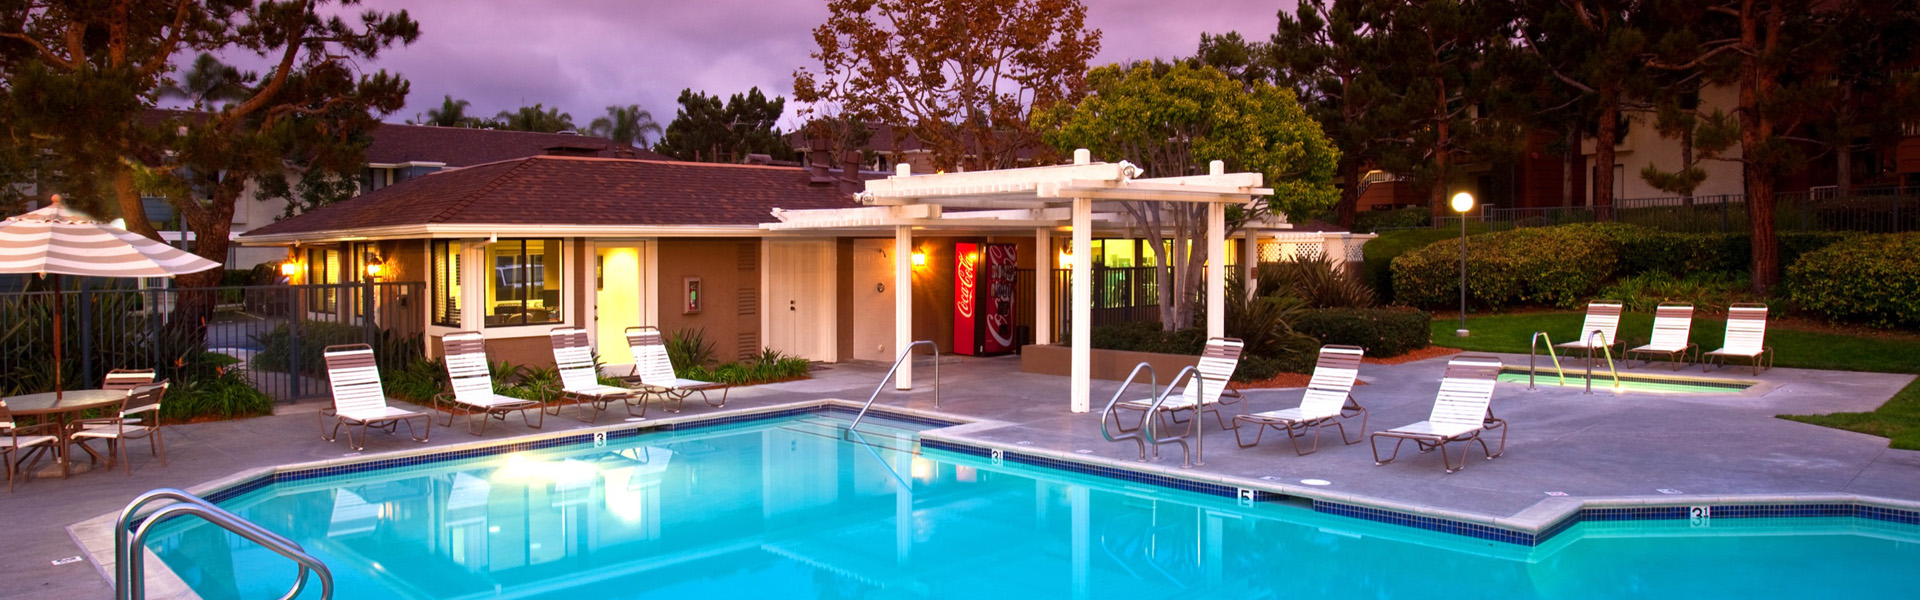 Pacific Pointe Amenities Pool Apartments San Clemente